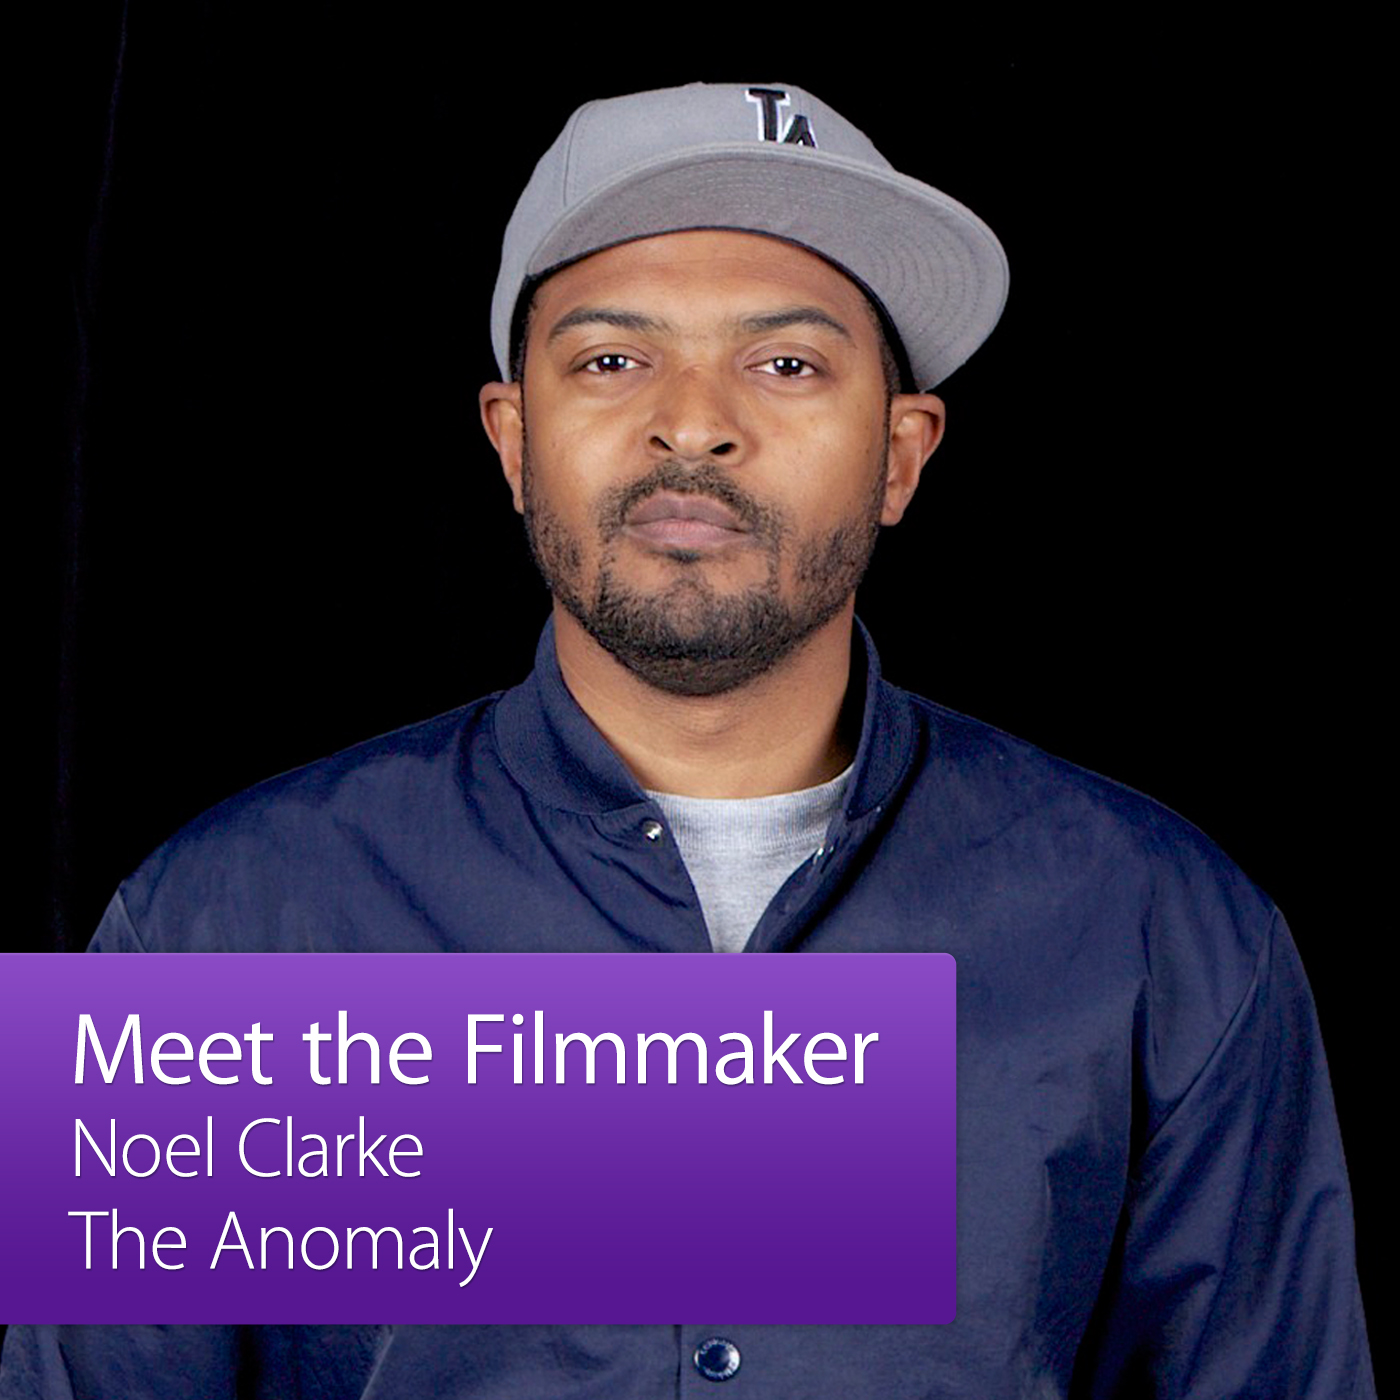 Noel Clarke, The Anomaly: Meet the Filmmaker